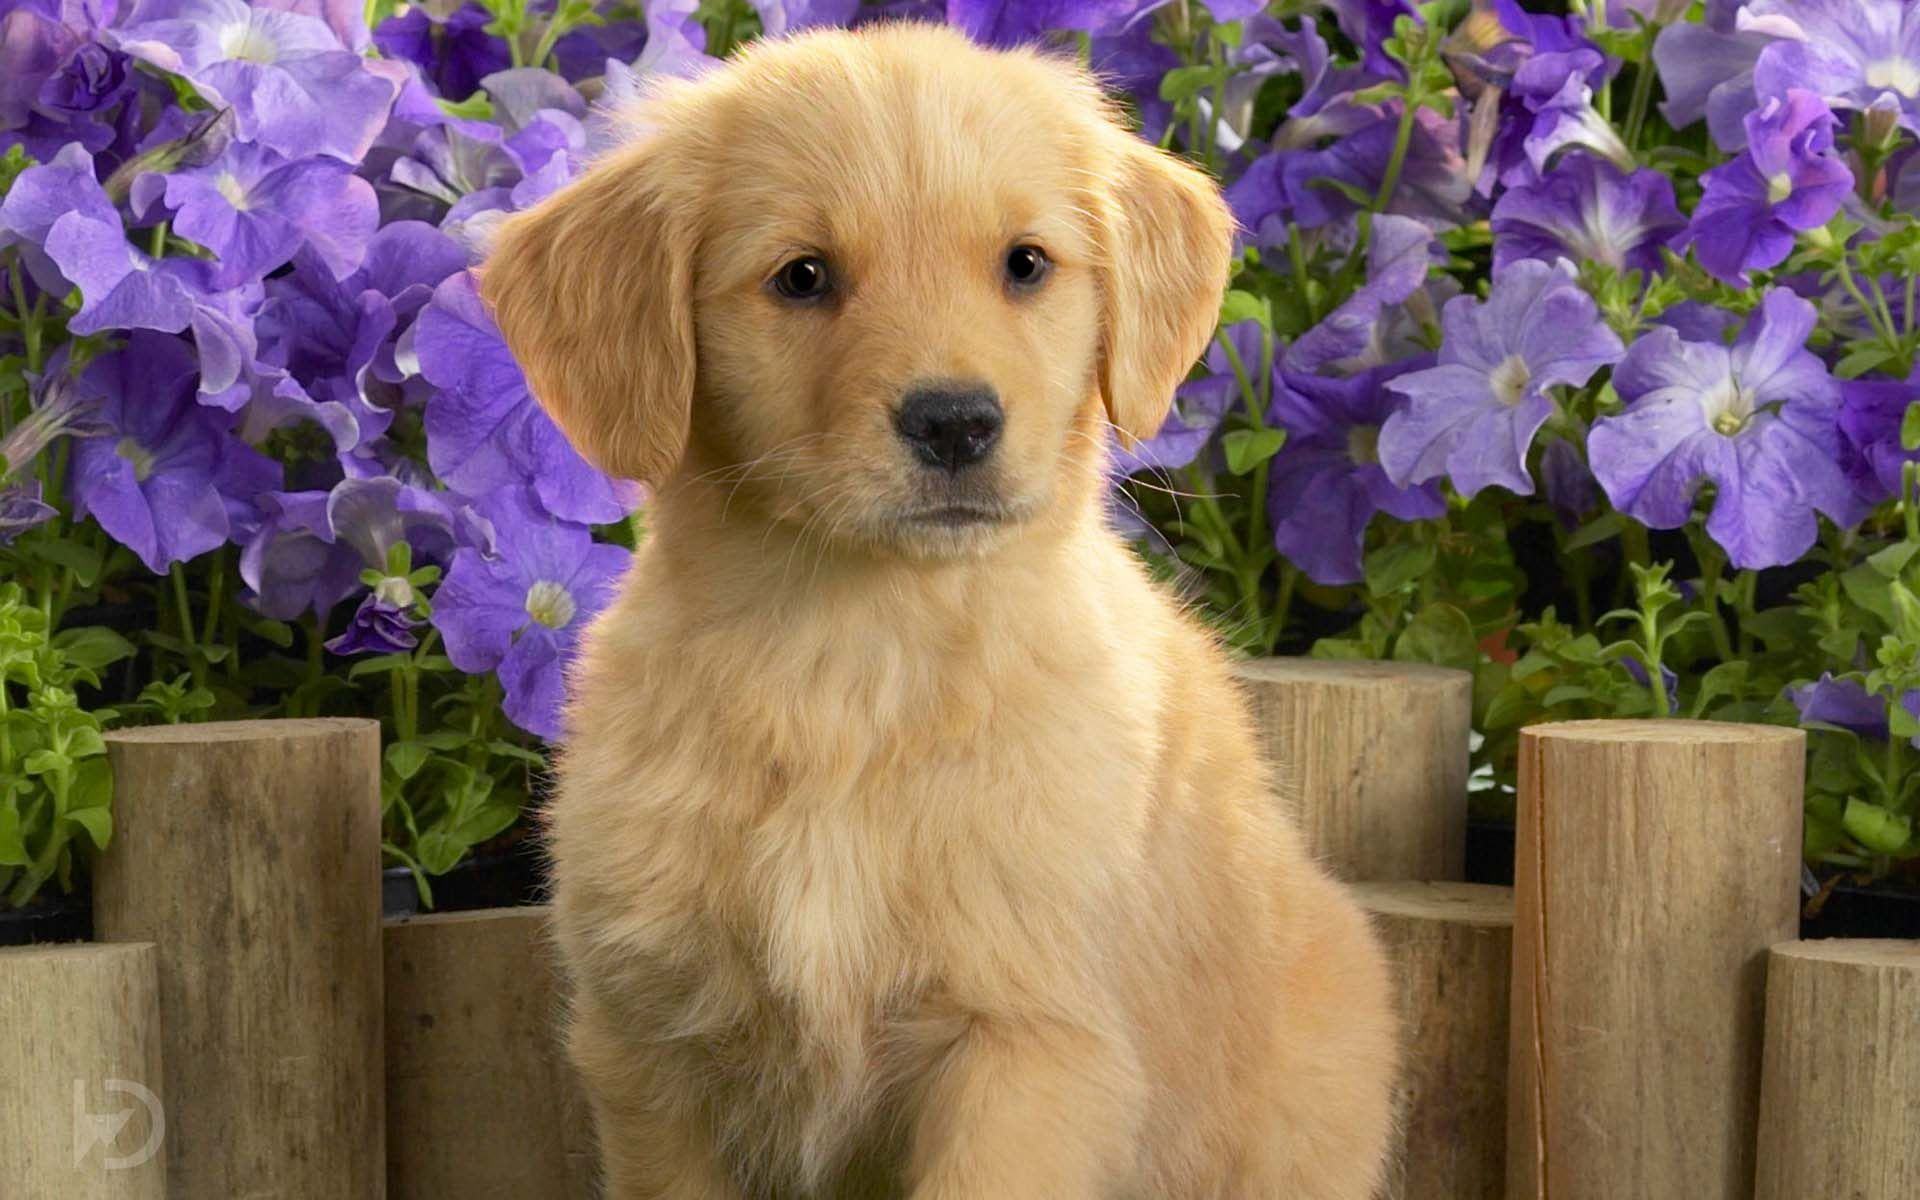 Puppy Cute Wallpaper Hd 30 For Desktop Background Jpg 1920 1200